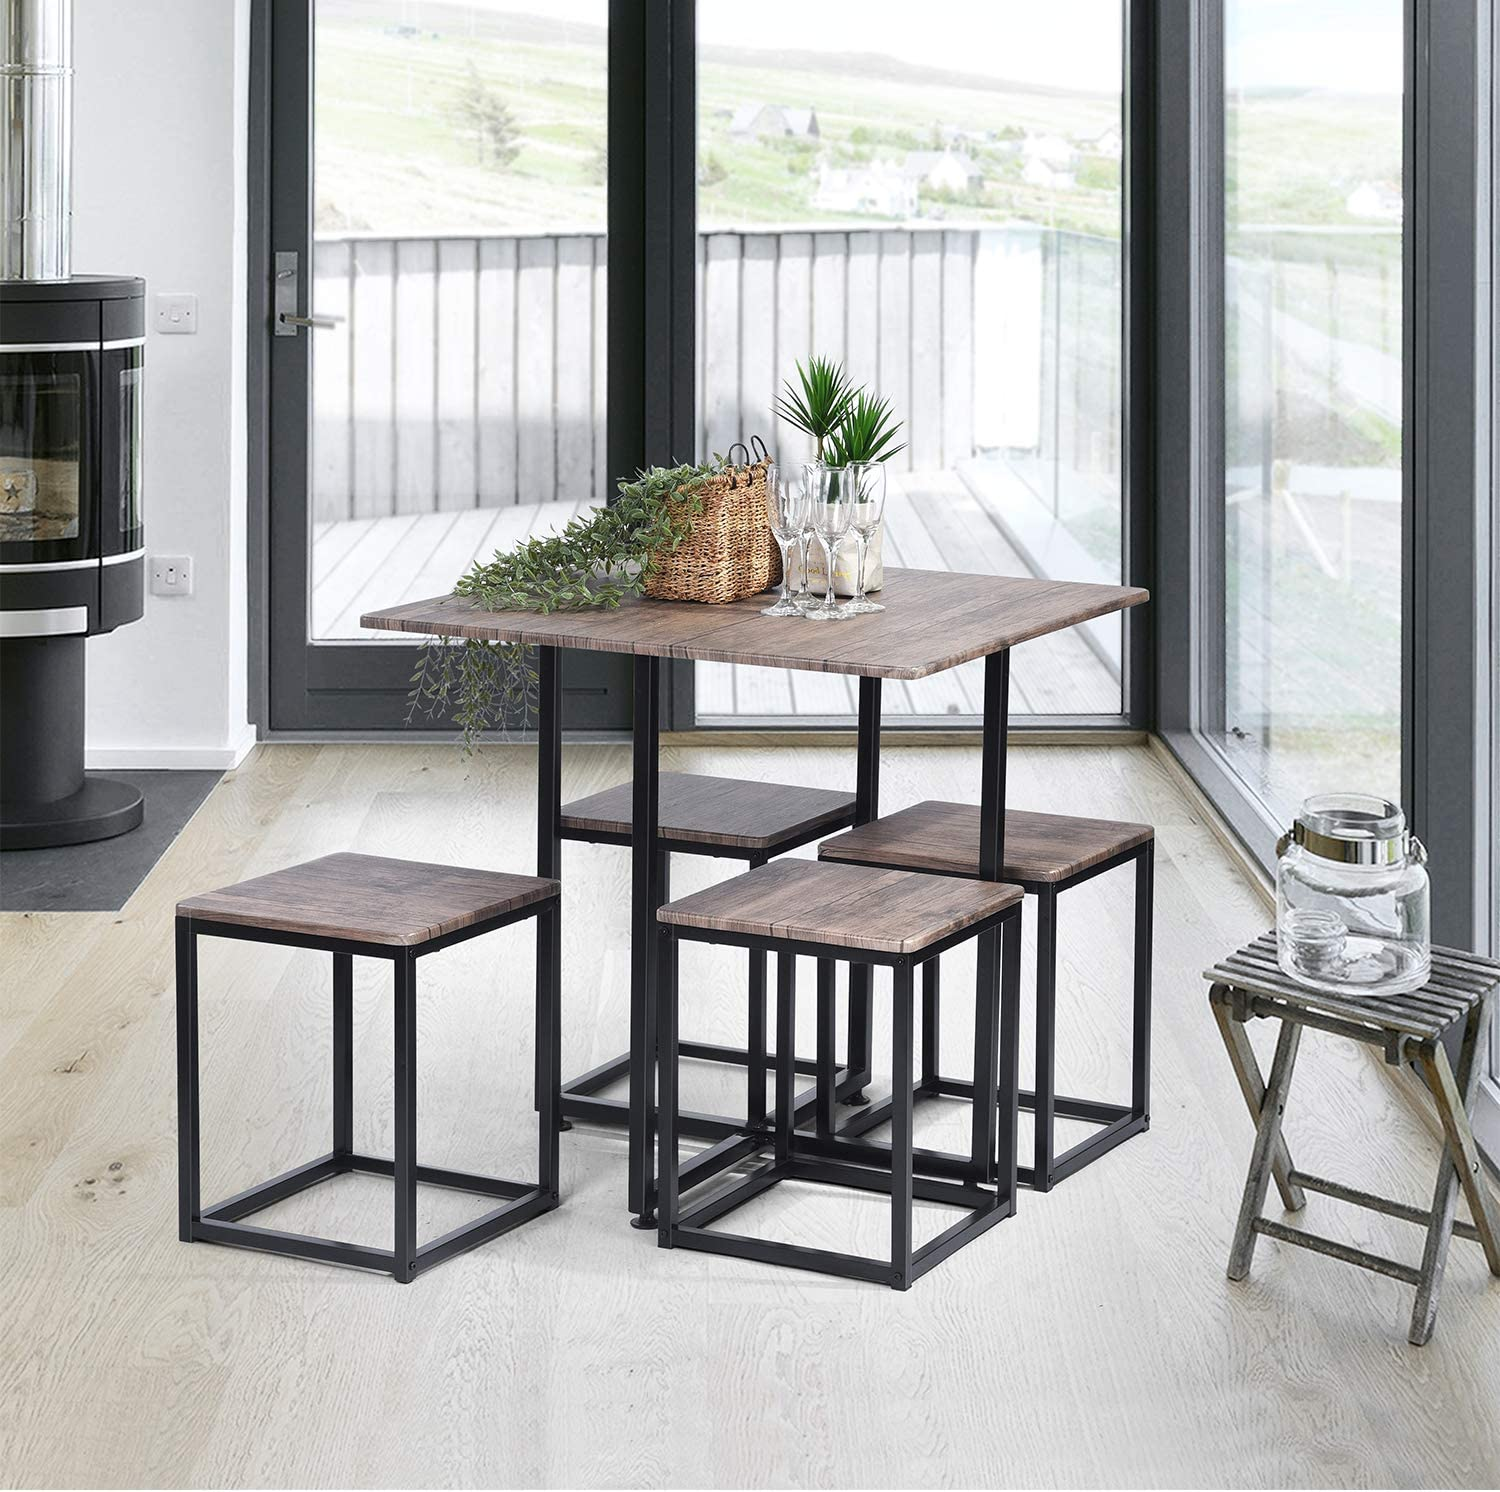 FurnitureR 5 Piece Wooden Metal Dining Table Sets Rectangle Table and 4 Round Chairs for Home Kitchen Modern Furniture,Beech and White Wood